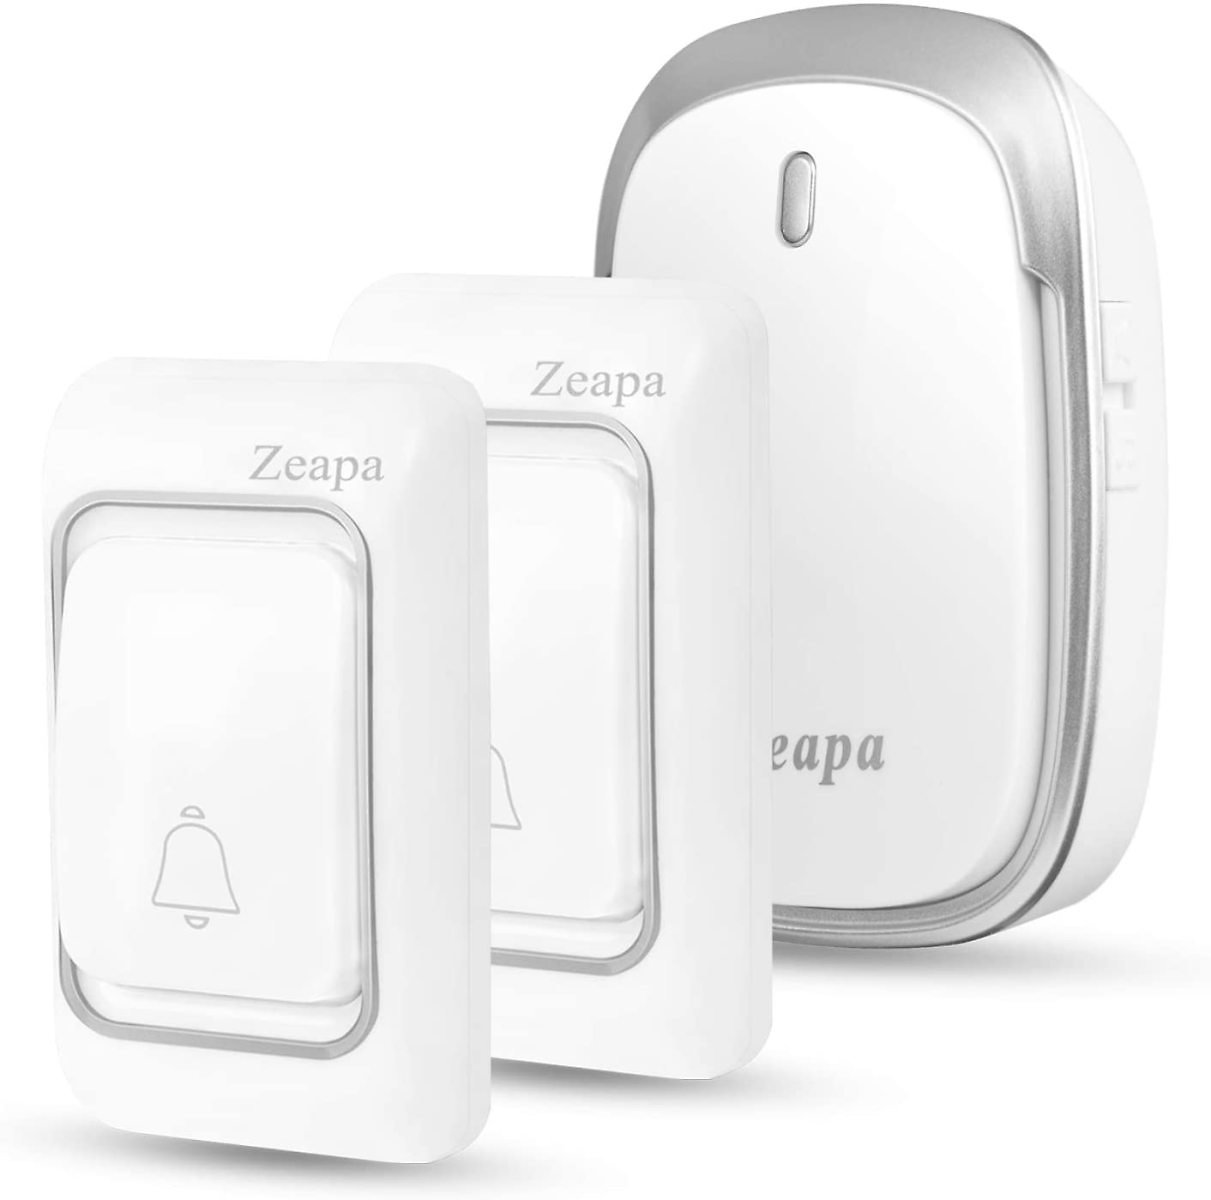 Wireless Doorbells, 1 Plug-in Receiver, 2 Transmitters, 1300ft Range, 58Chimes, 4Level Sound, LED Indicator, Battery Included, W